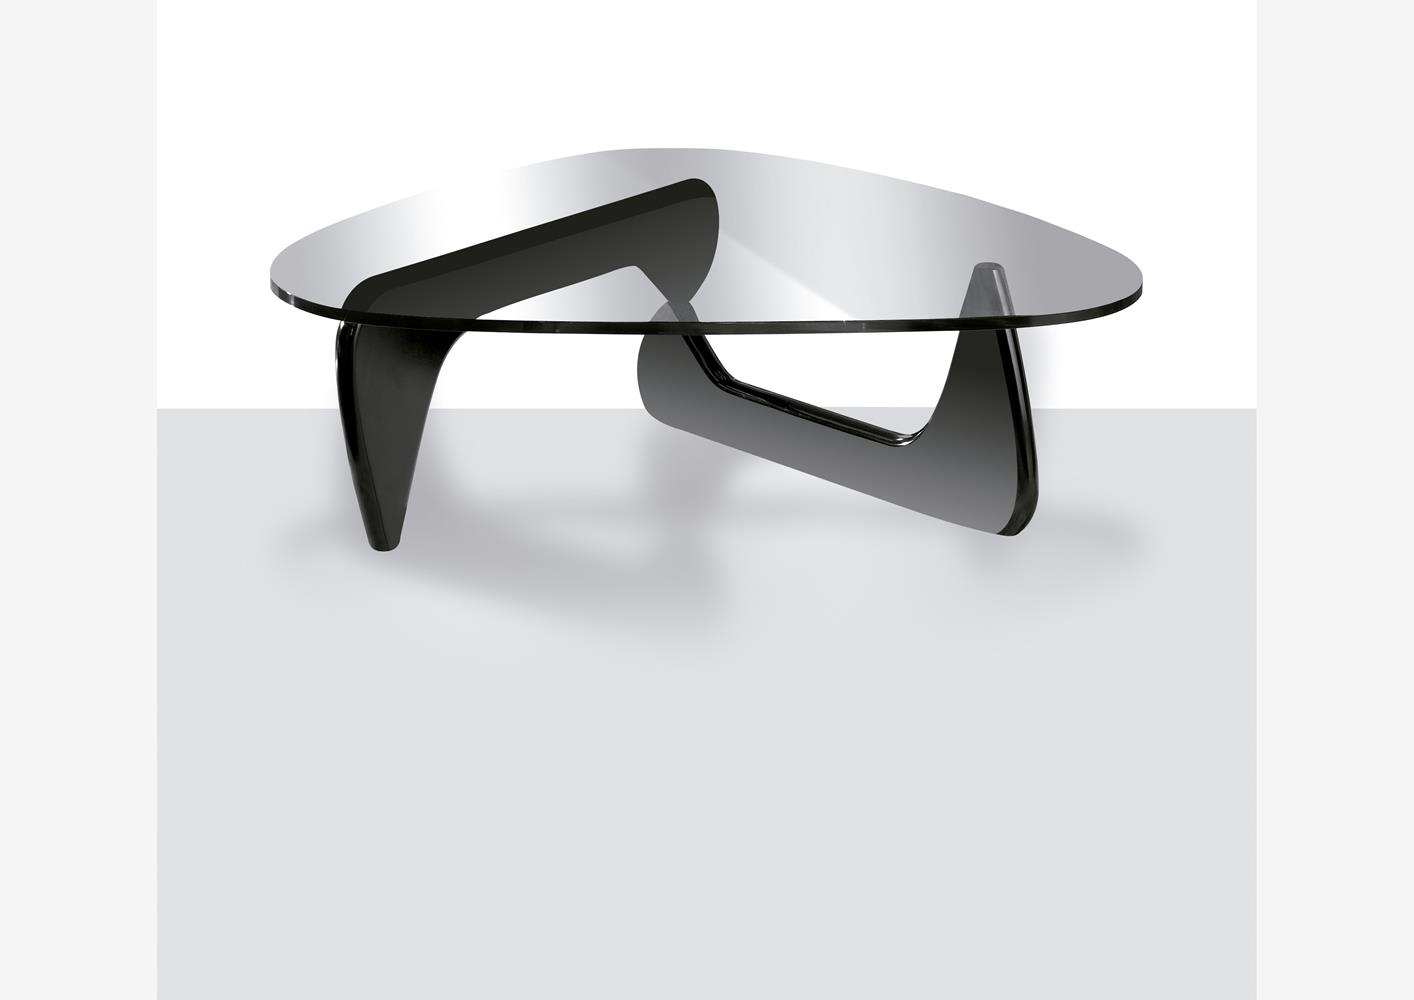 Pied De Table Contemporain Table Basse Contemporaine Plateau Verre Pieds Noir